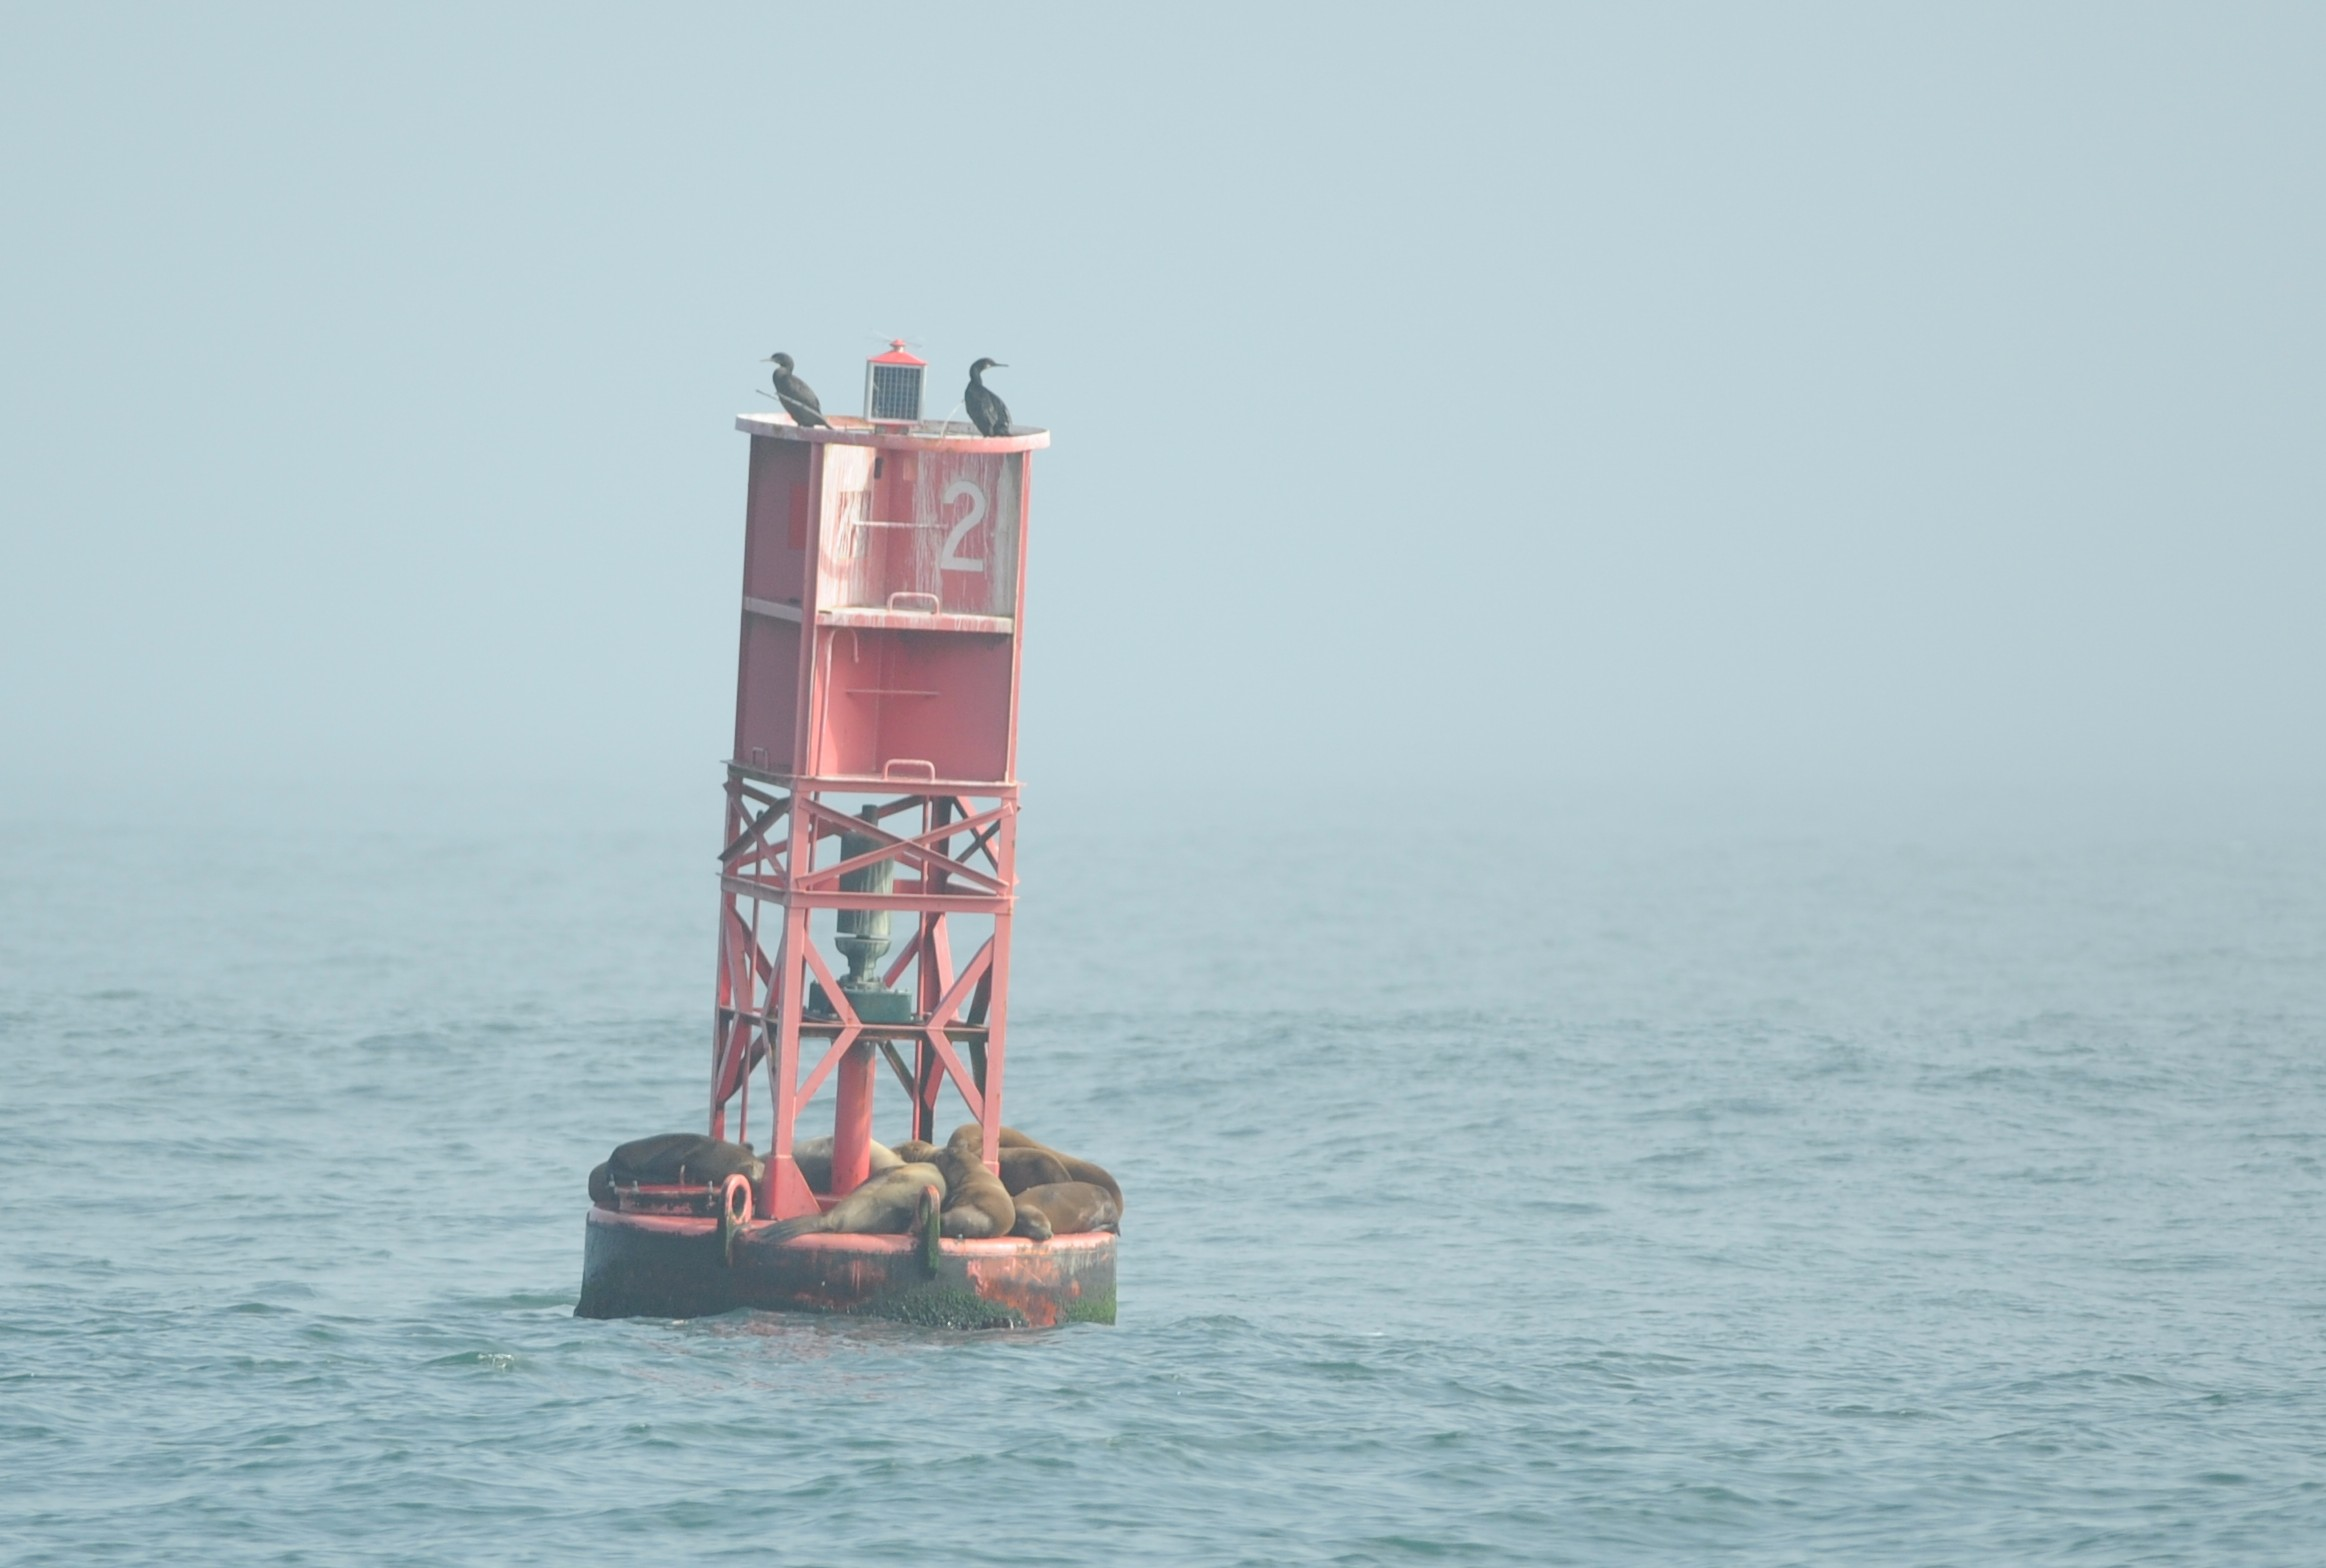 Sea lions resting on shipping lane buoy #2.